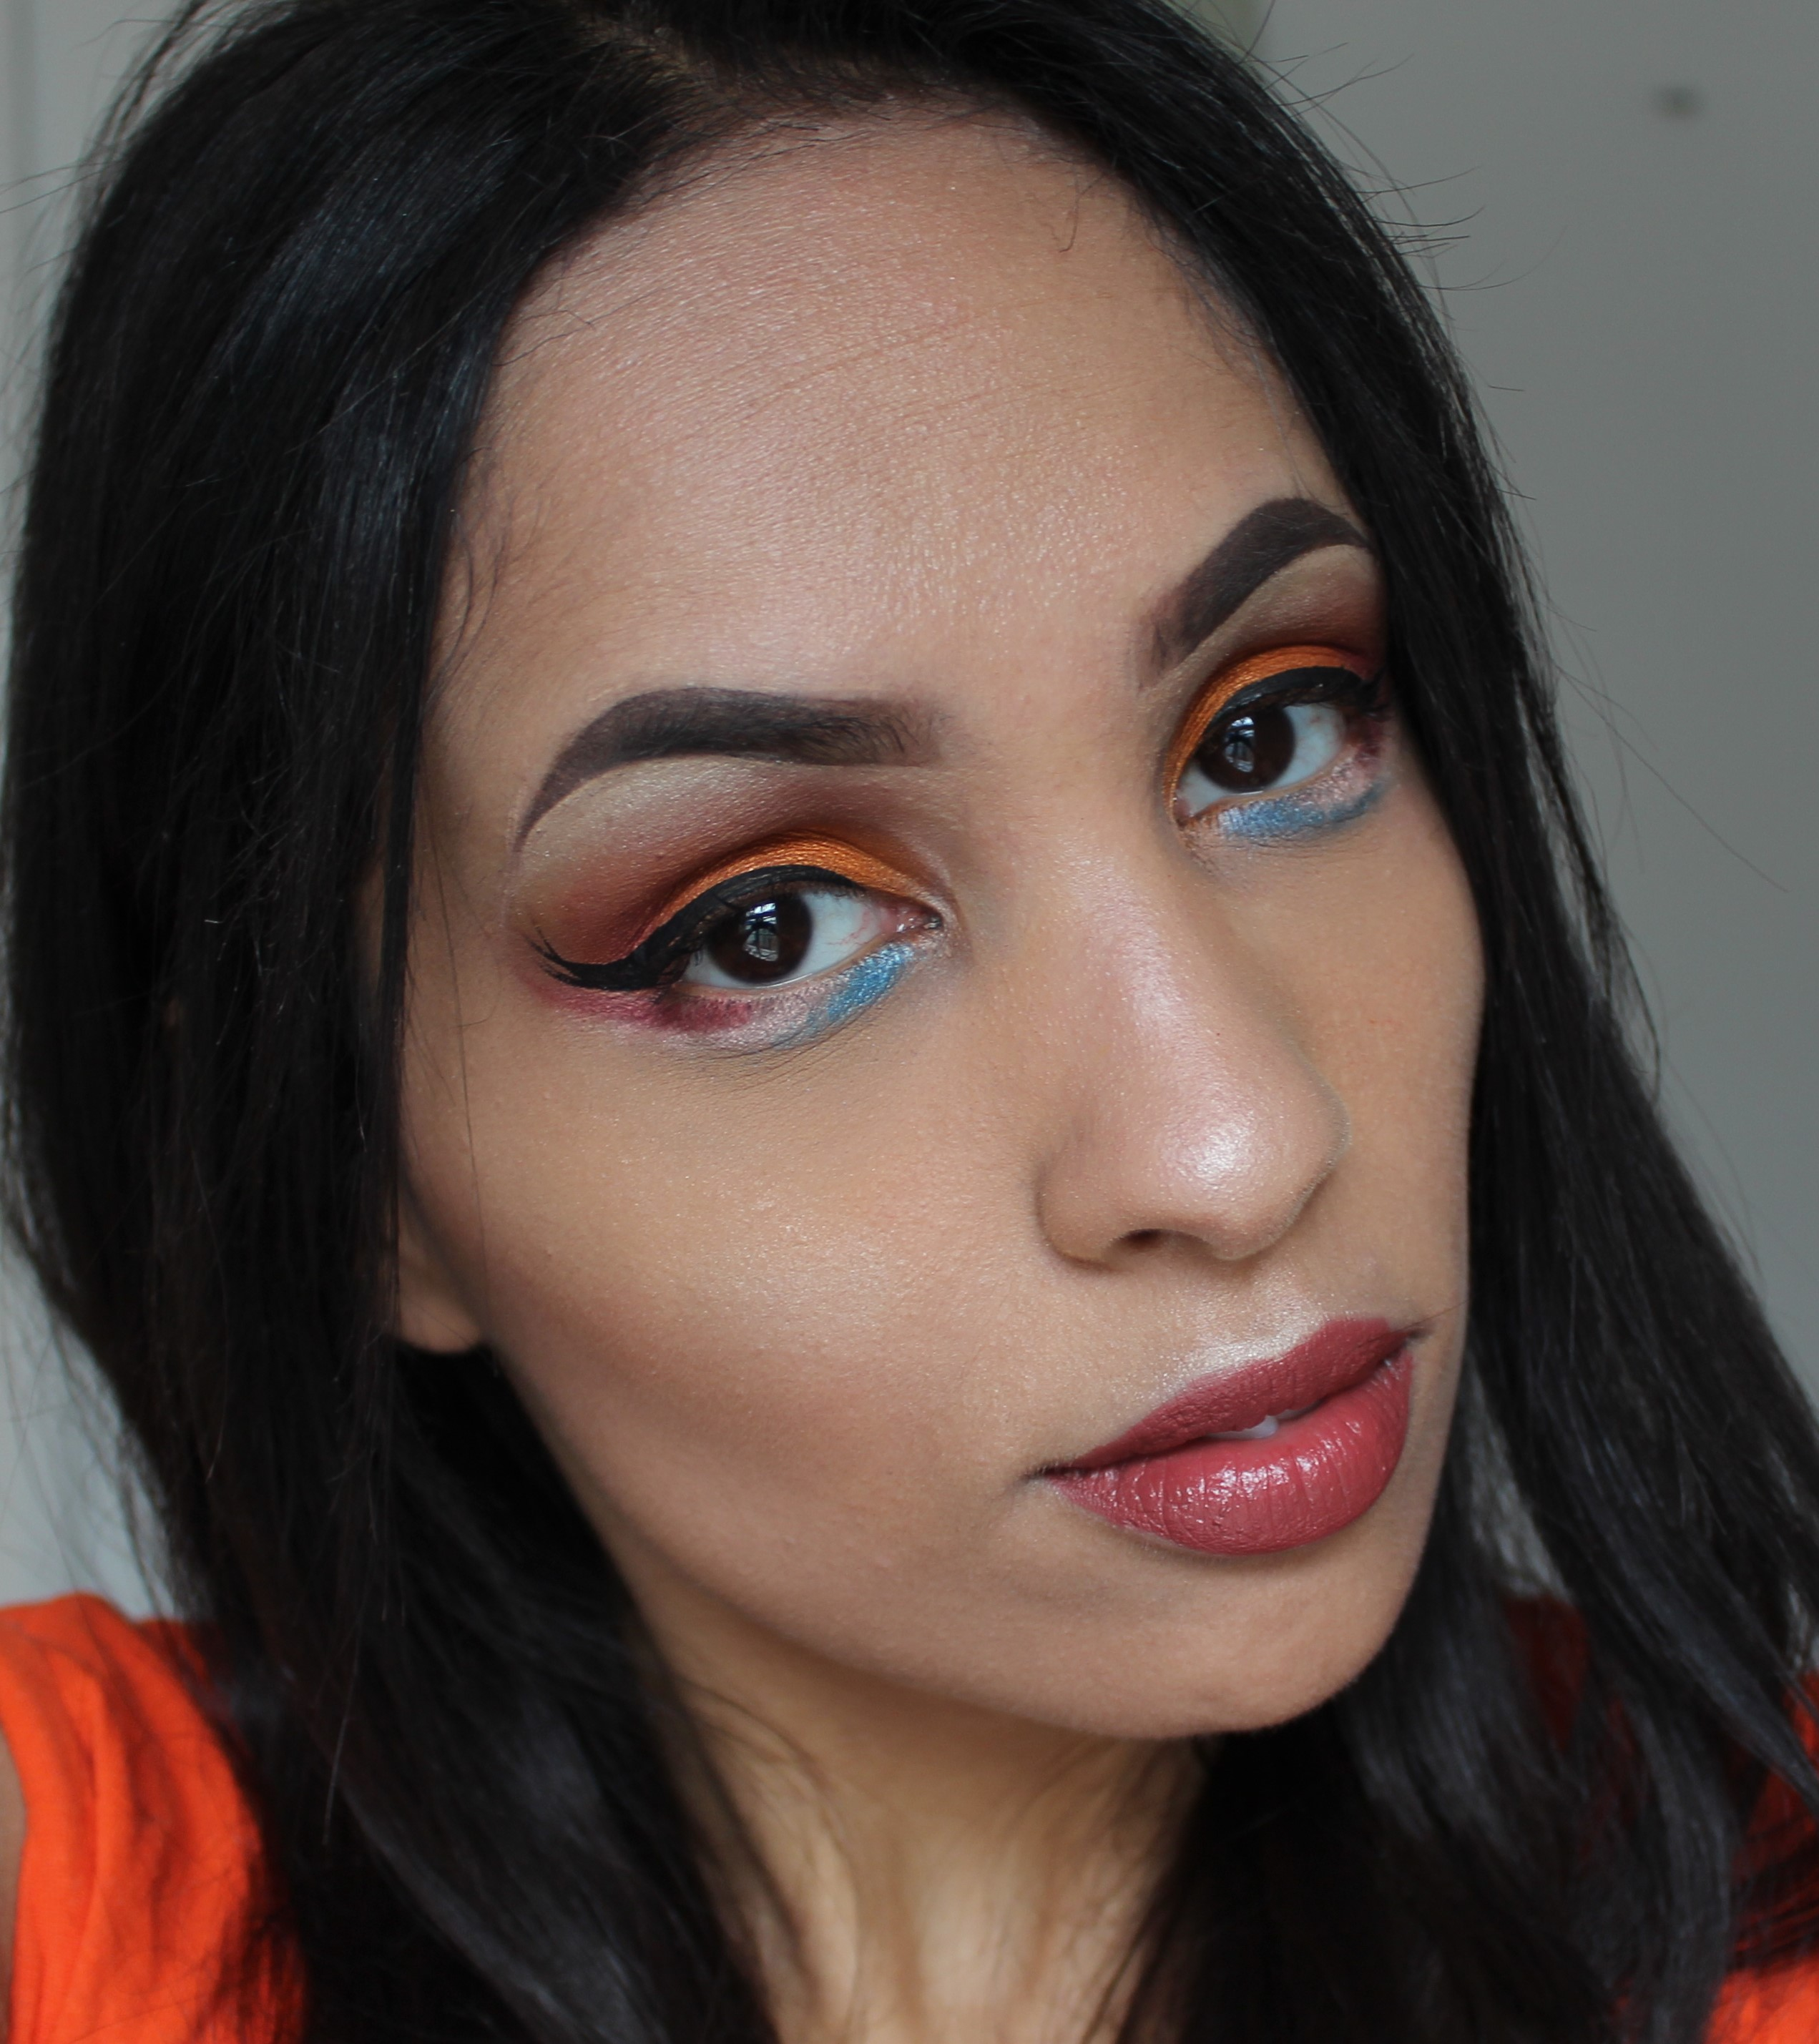 Oranje make-up look | Fijne Koningsdag!